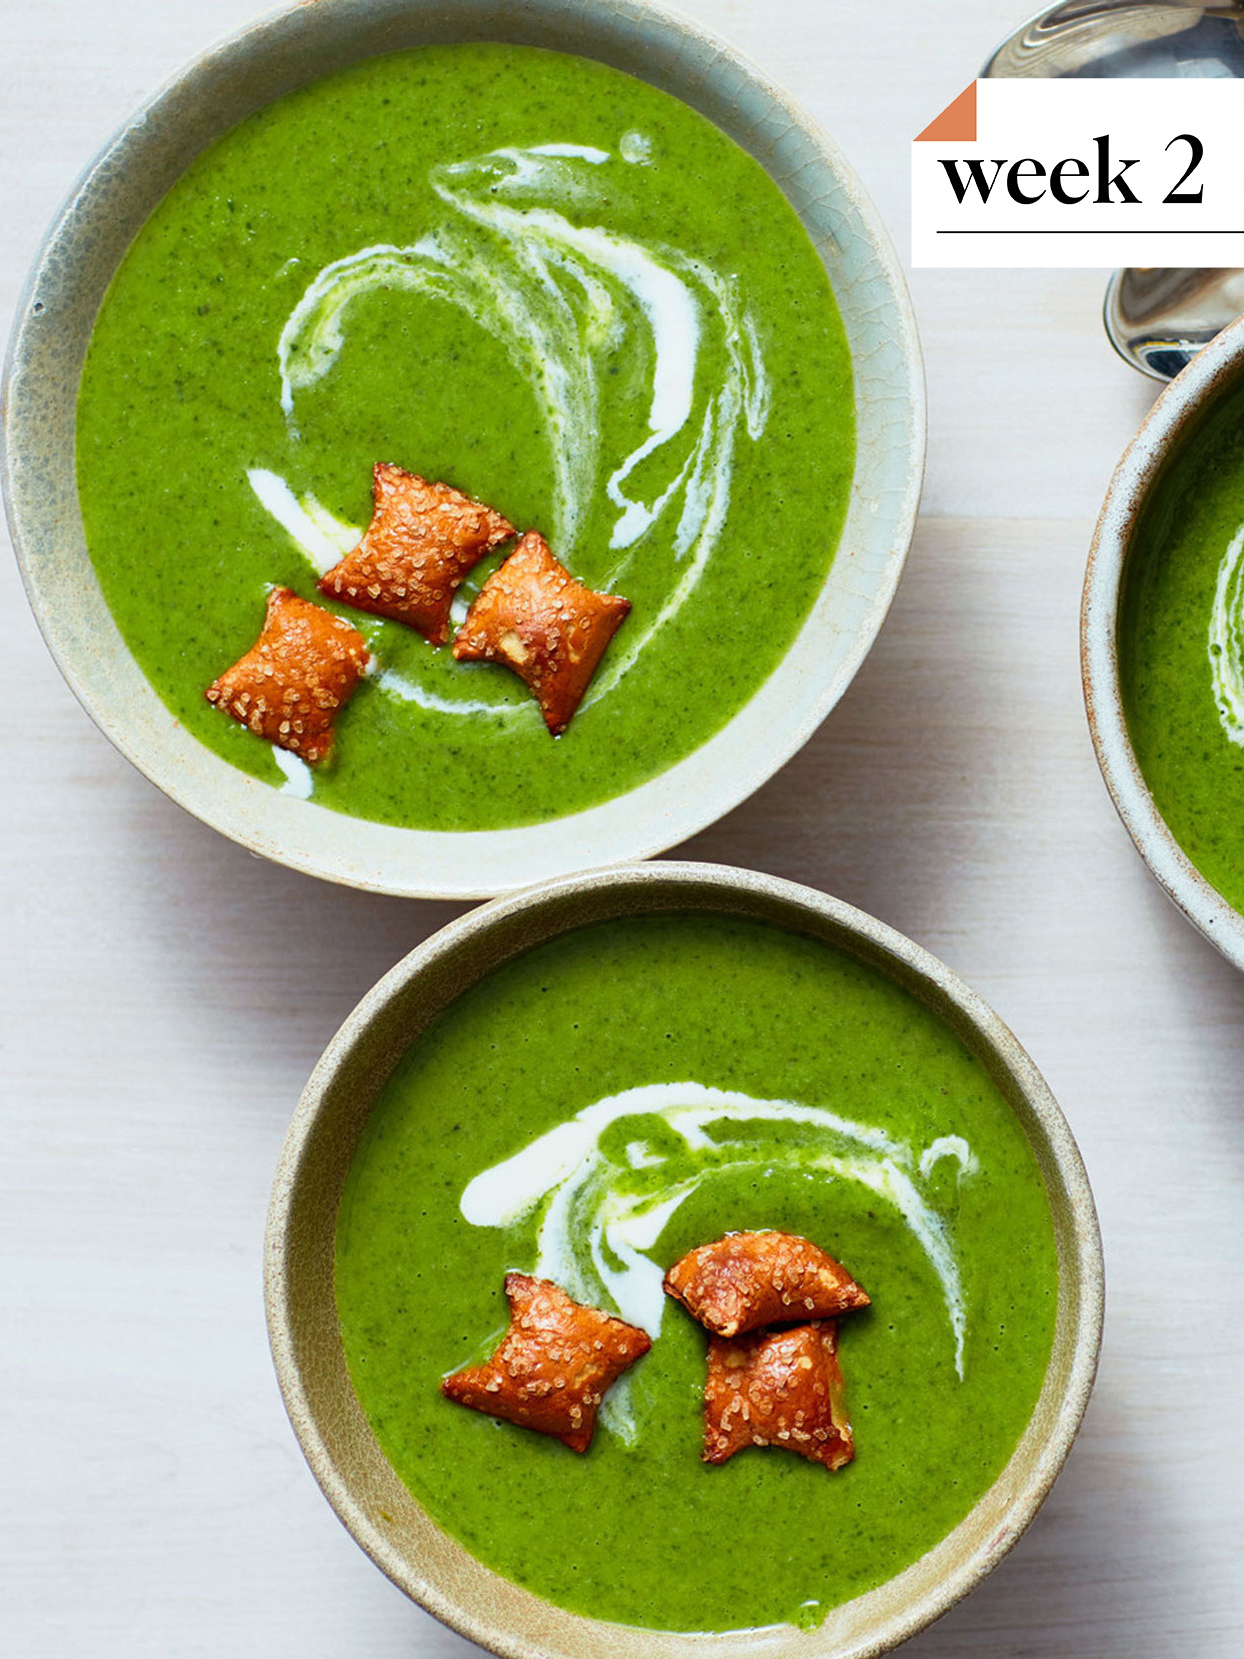 Creamy Broccoli-and-Spinach Soup